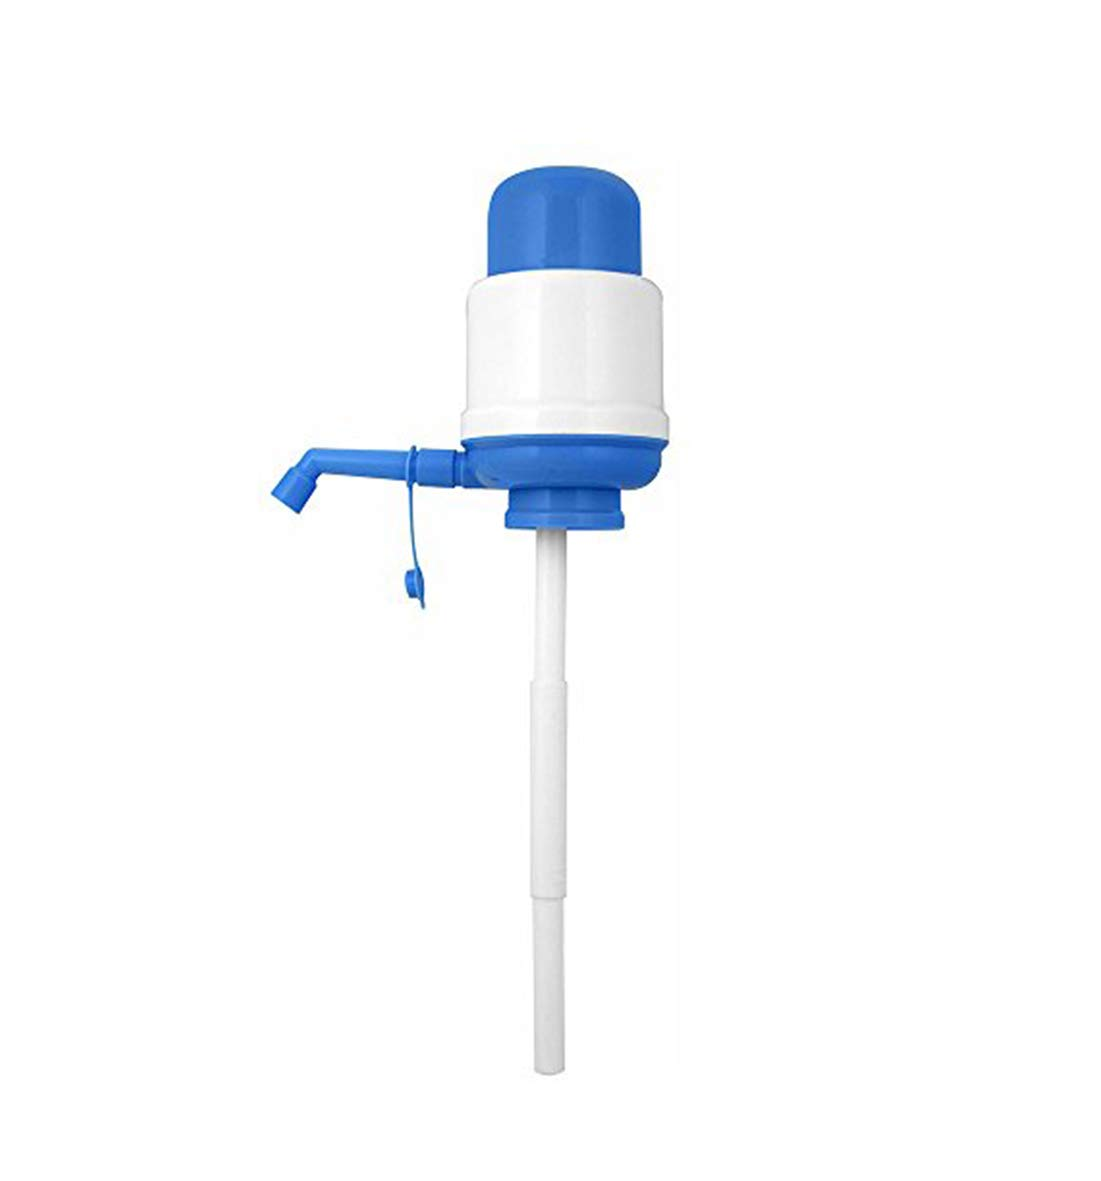 CGC - Water Dispenser Pump for Bottles Jugs and 5L, 8L and 10L